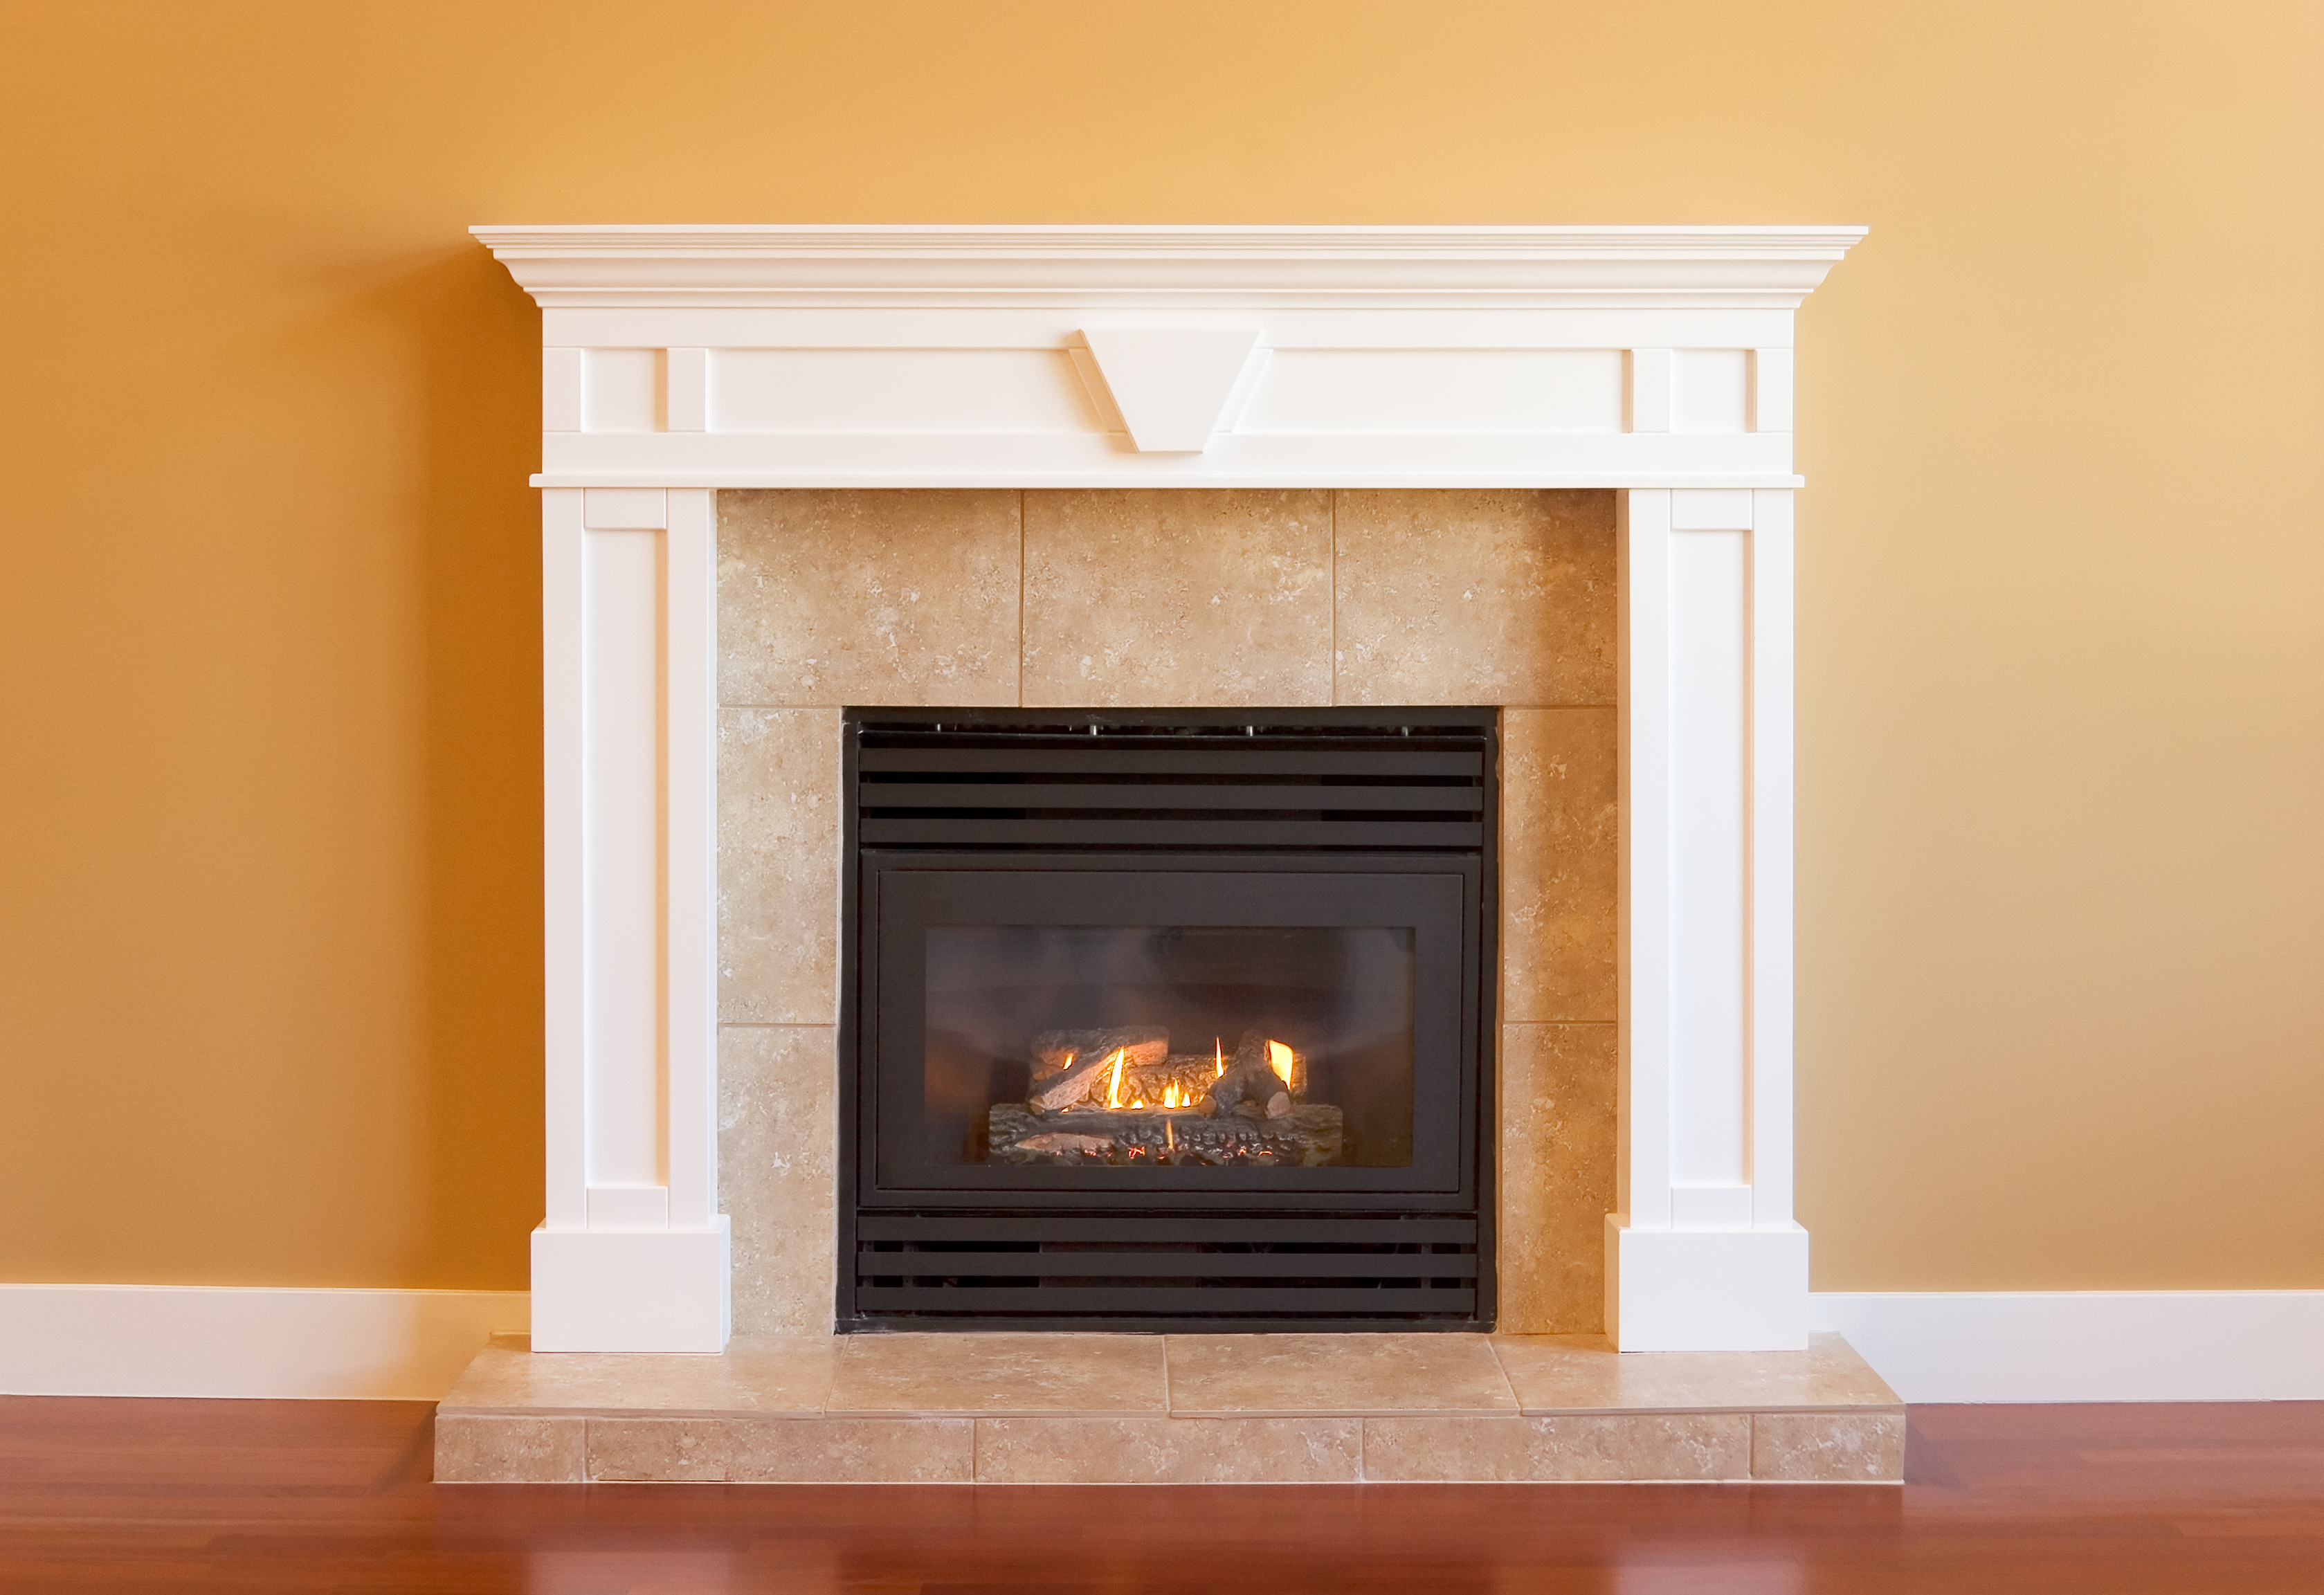 Trendy Options for Tiling Your Fireplace